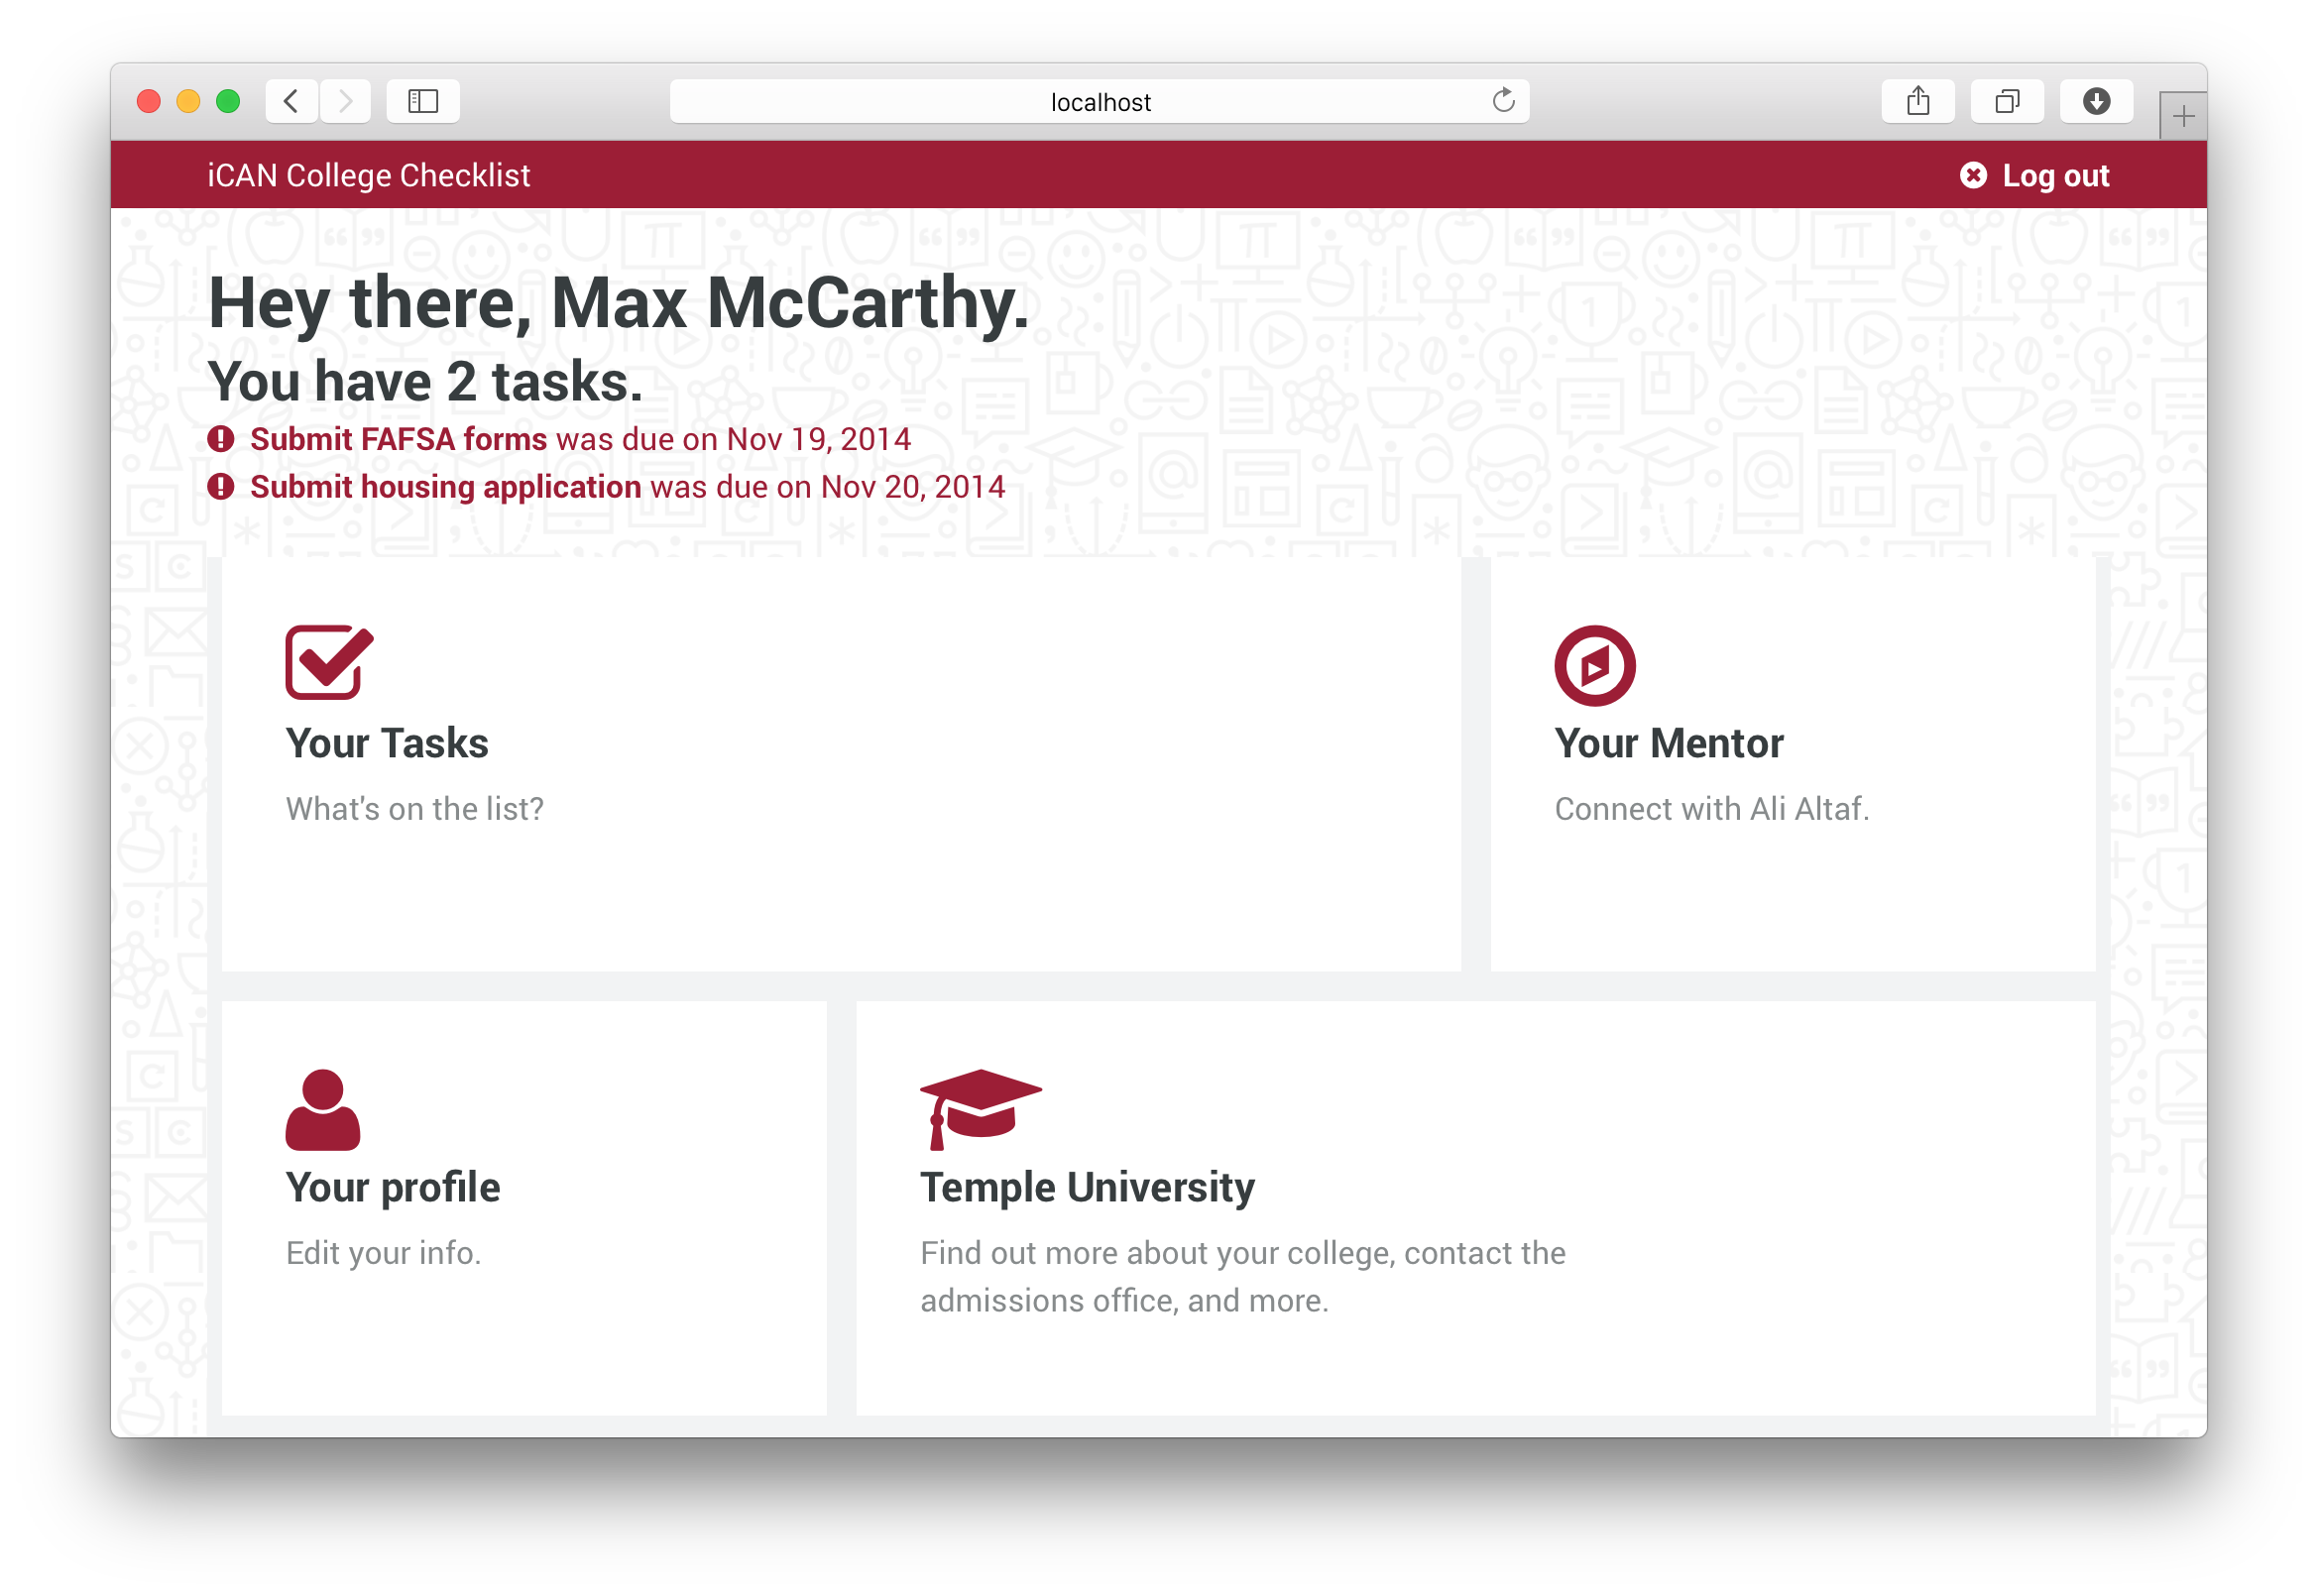 Account page with Your Tasks, Your Mentor, Your Profile, and Your College